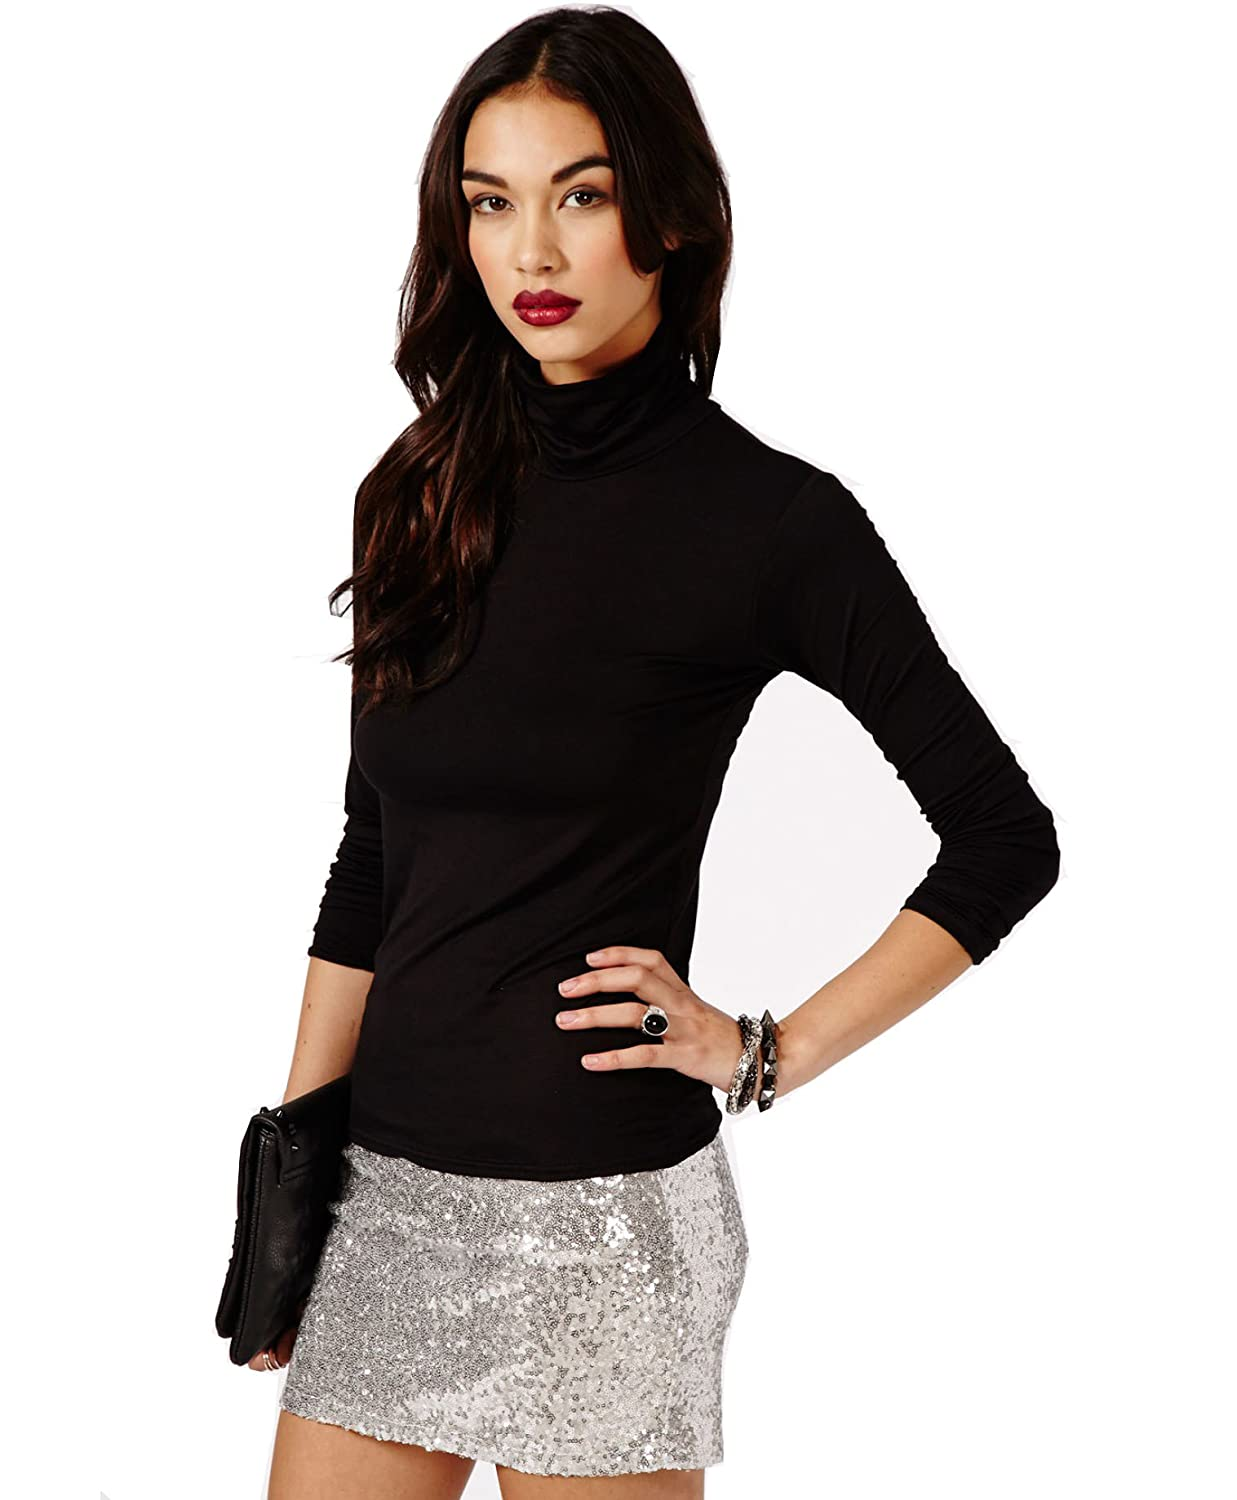 530f360f5cb17b LADIES/WOMEN'S STRETCHY ROLL-NECK LONG-SLEEVE COTTON PLAIN TOPS: Amazon.co. uk: Clothing